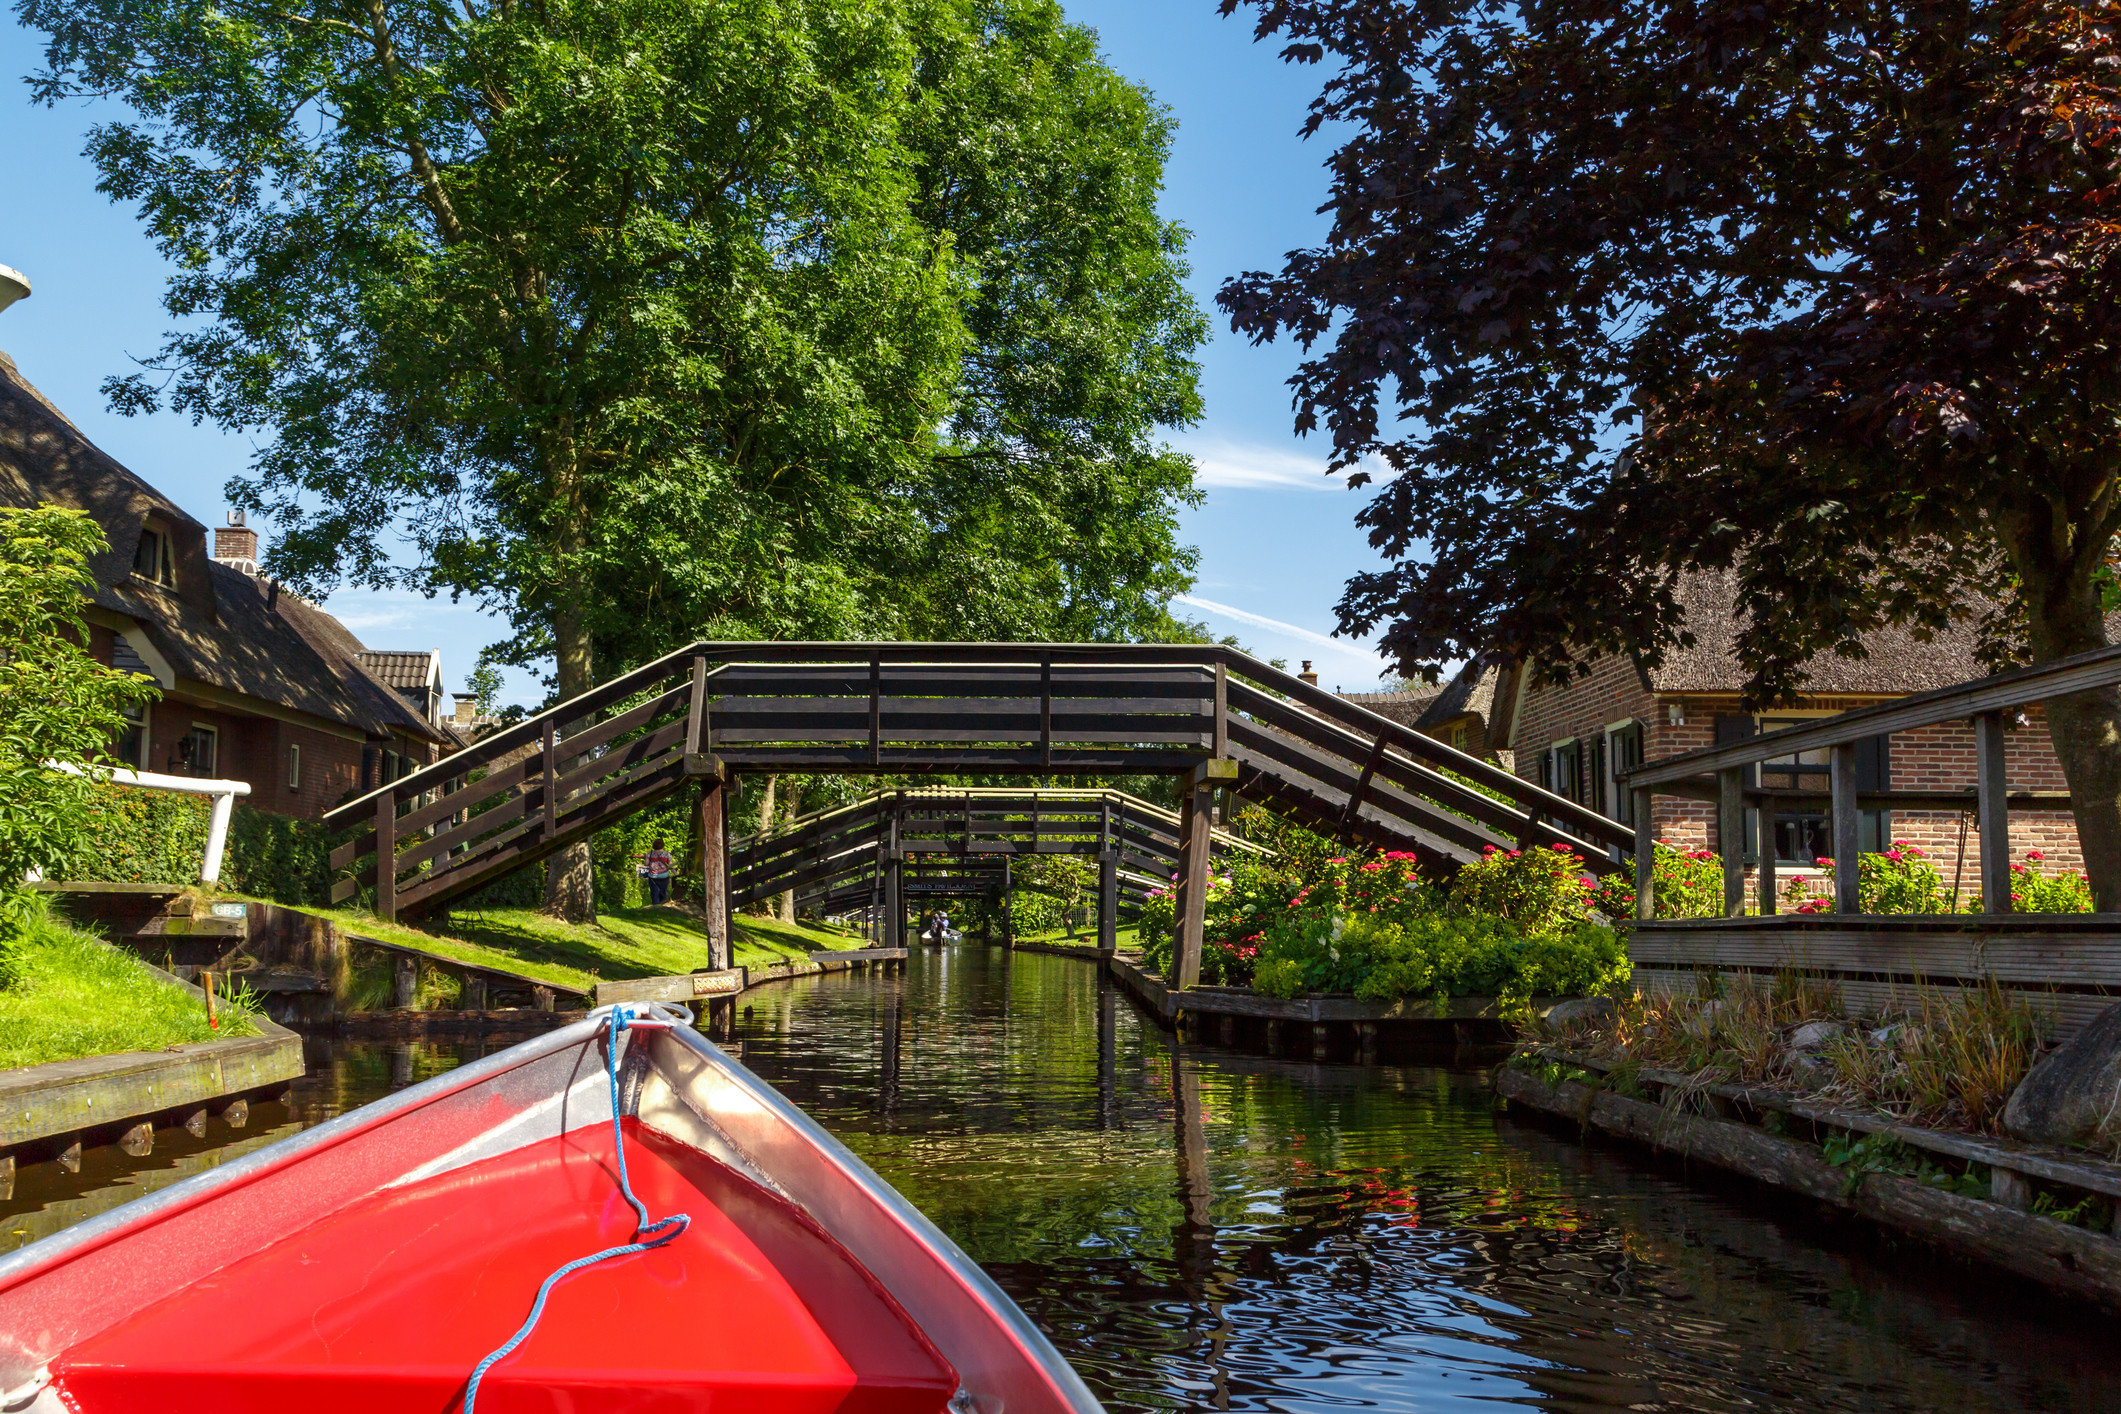 Trip Ideas tree outdoor sky water Canal River waterway house red estate flower Garden traveling Playground